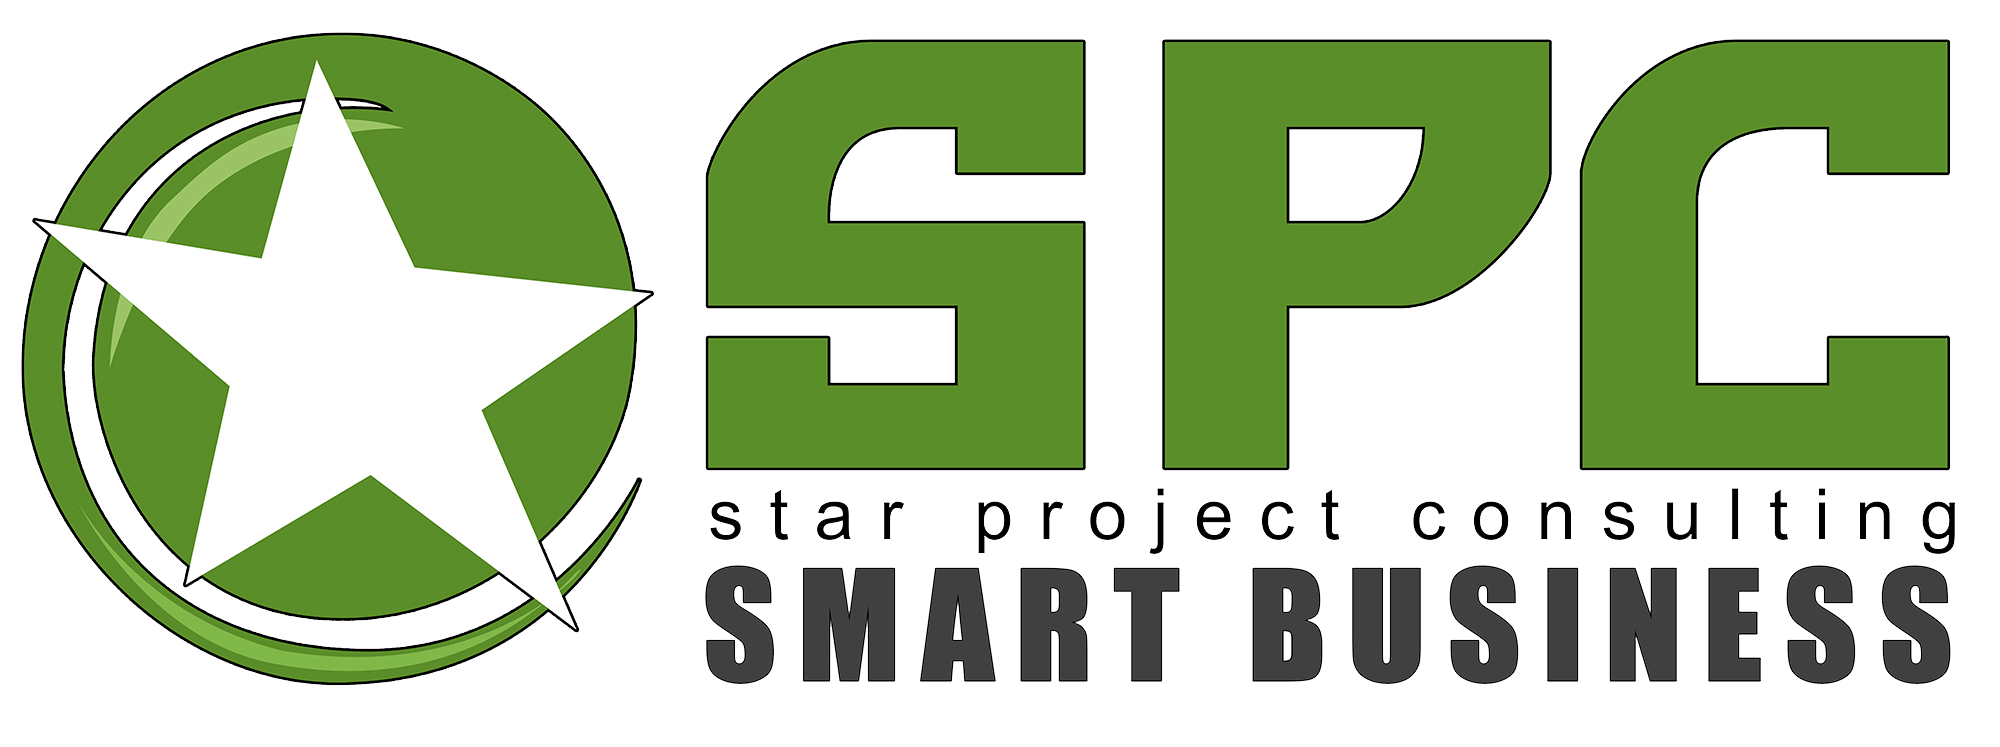 Star project Consulting